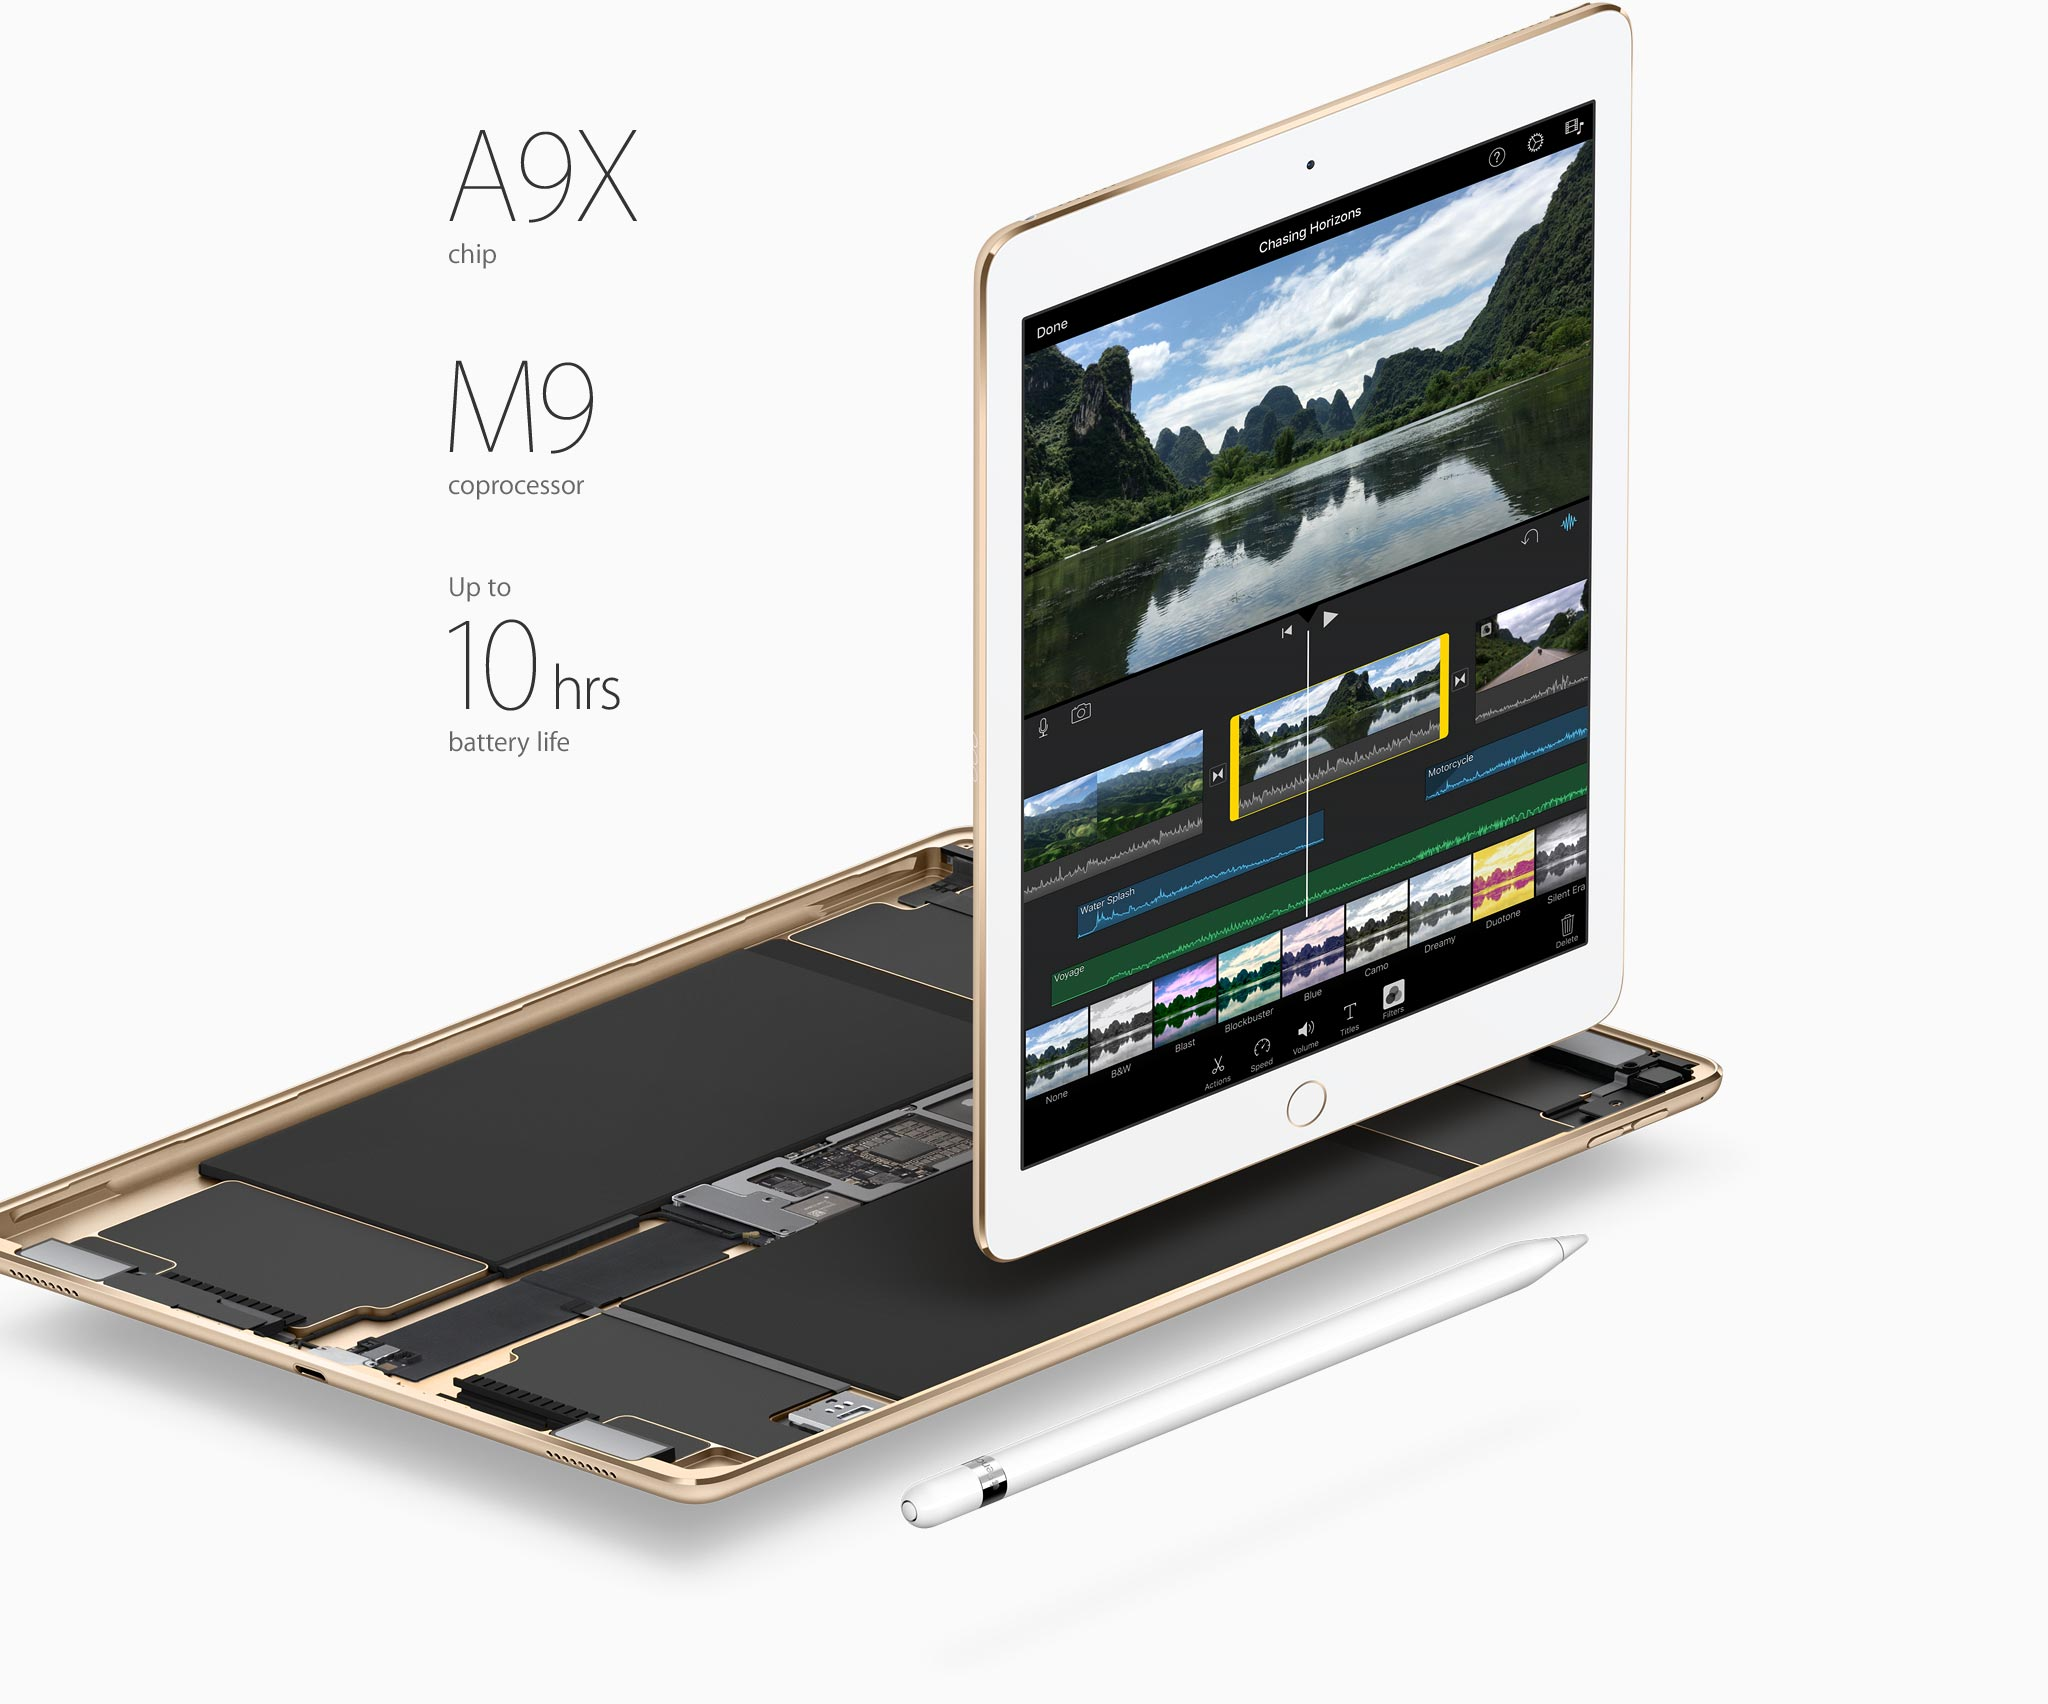 A9X chip. M9 coprocessor. Up to 10 hrs battery life.